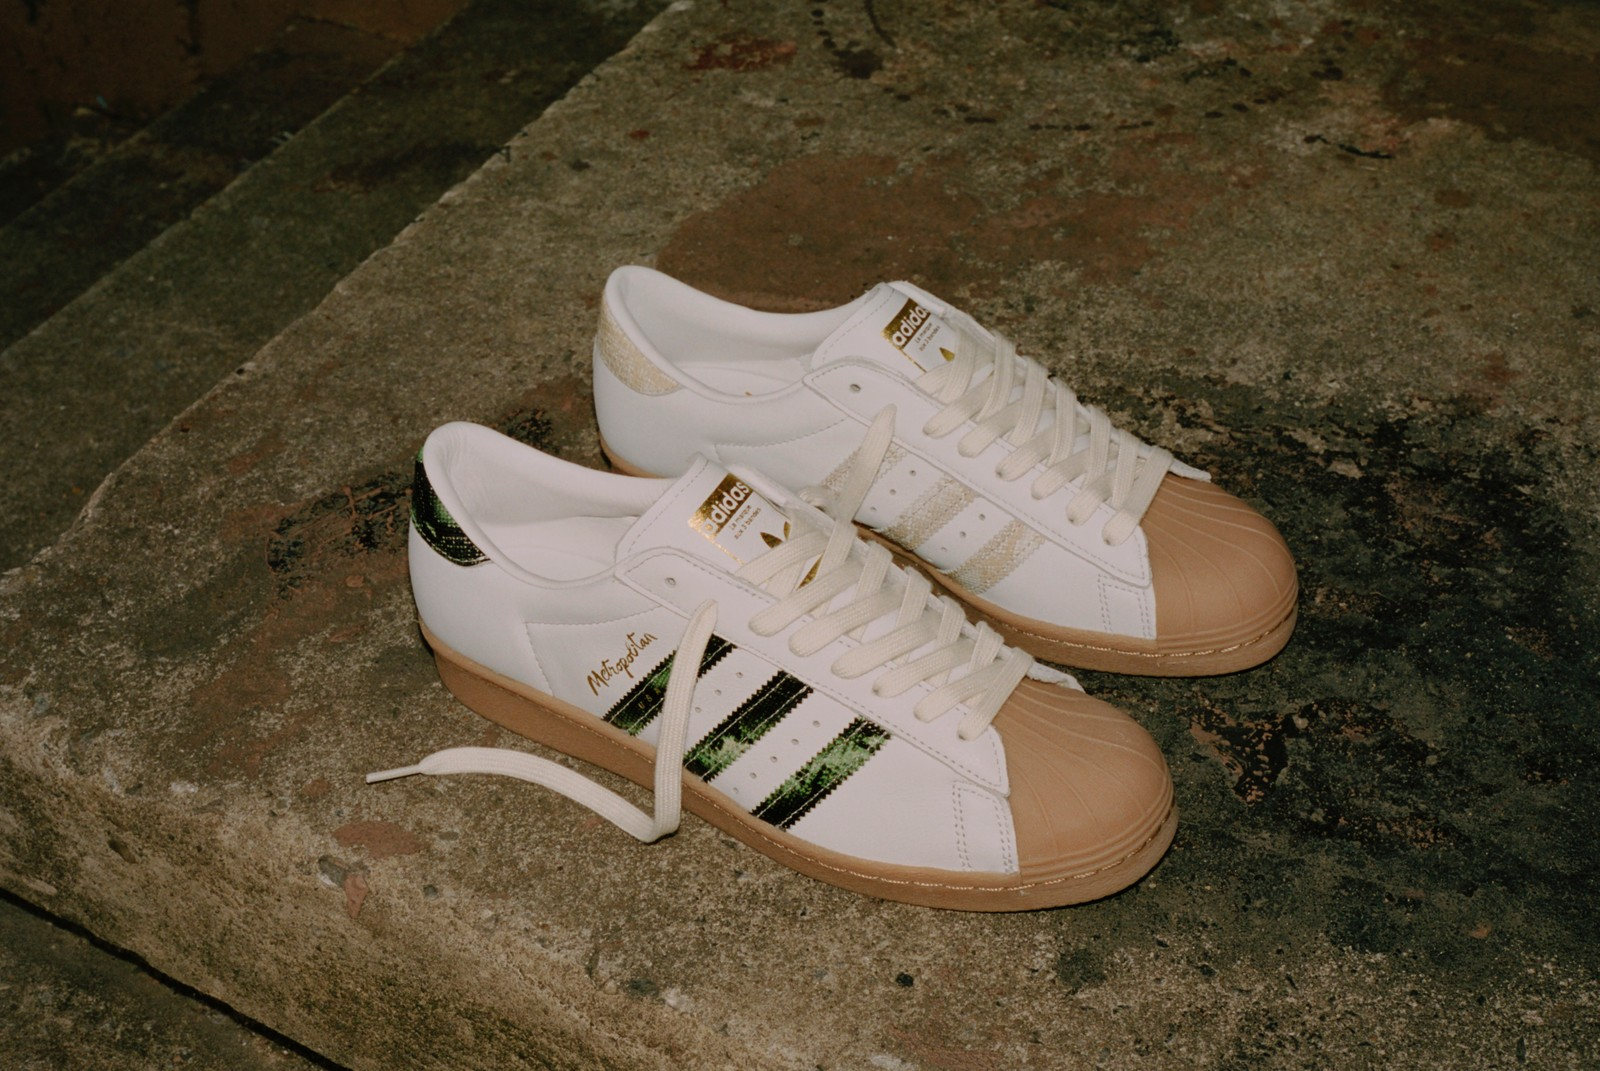 Adidas Teams Up With Metropolitan For Shelltoe Superstar Collab